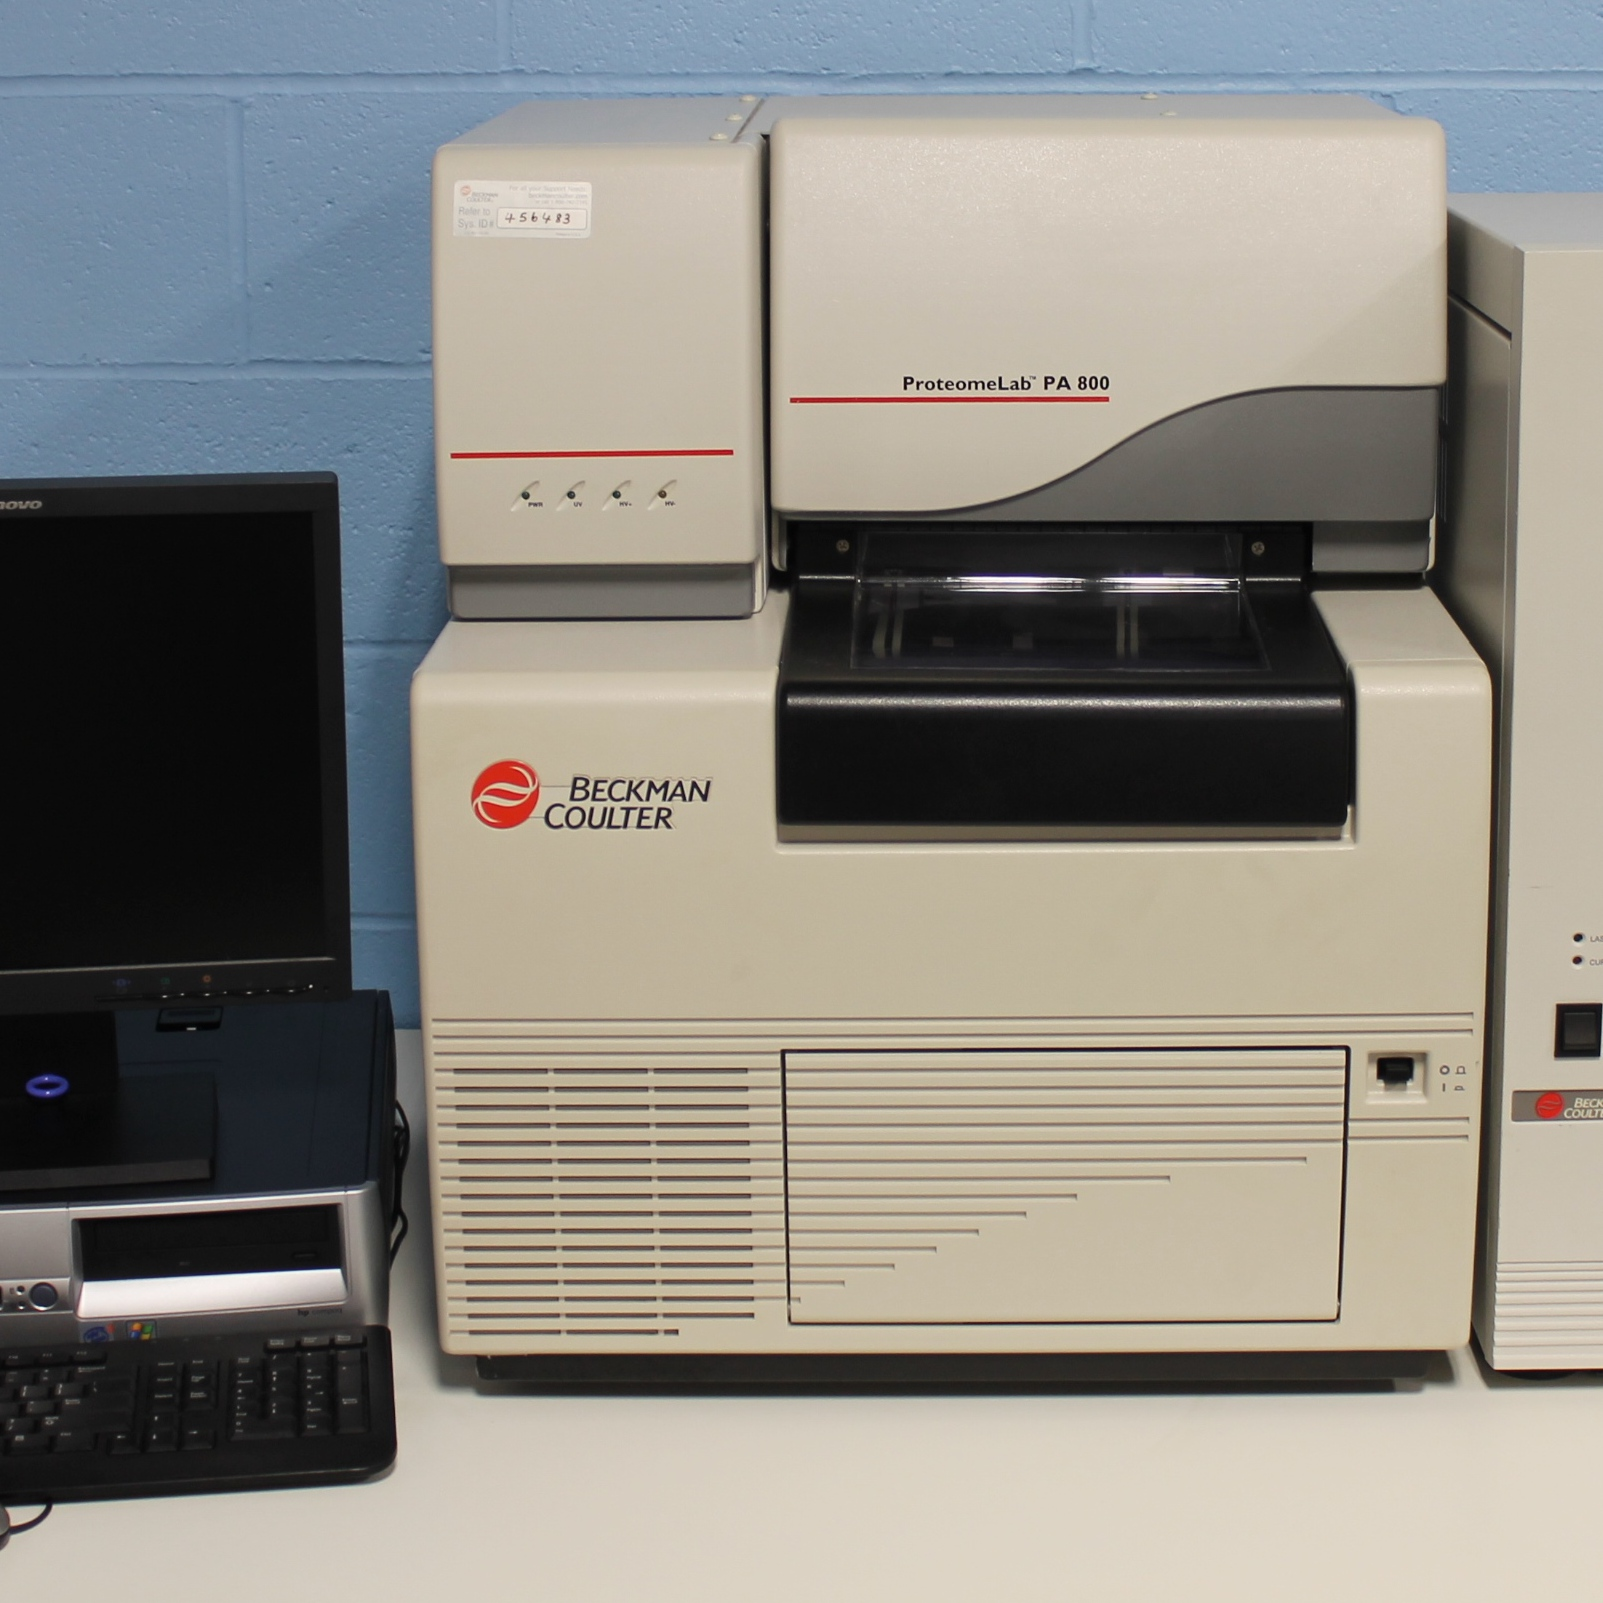 PA800 ProteomeLab Protein Characterization System